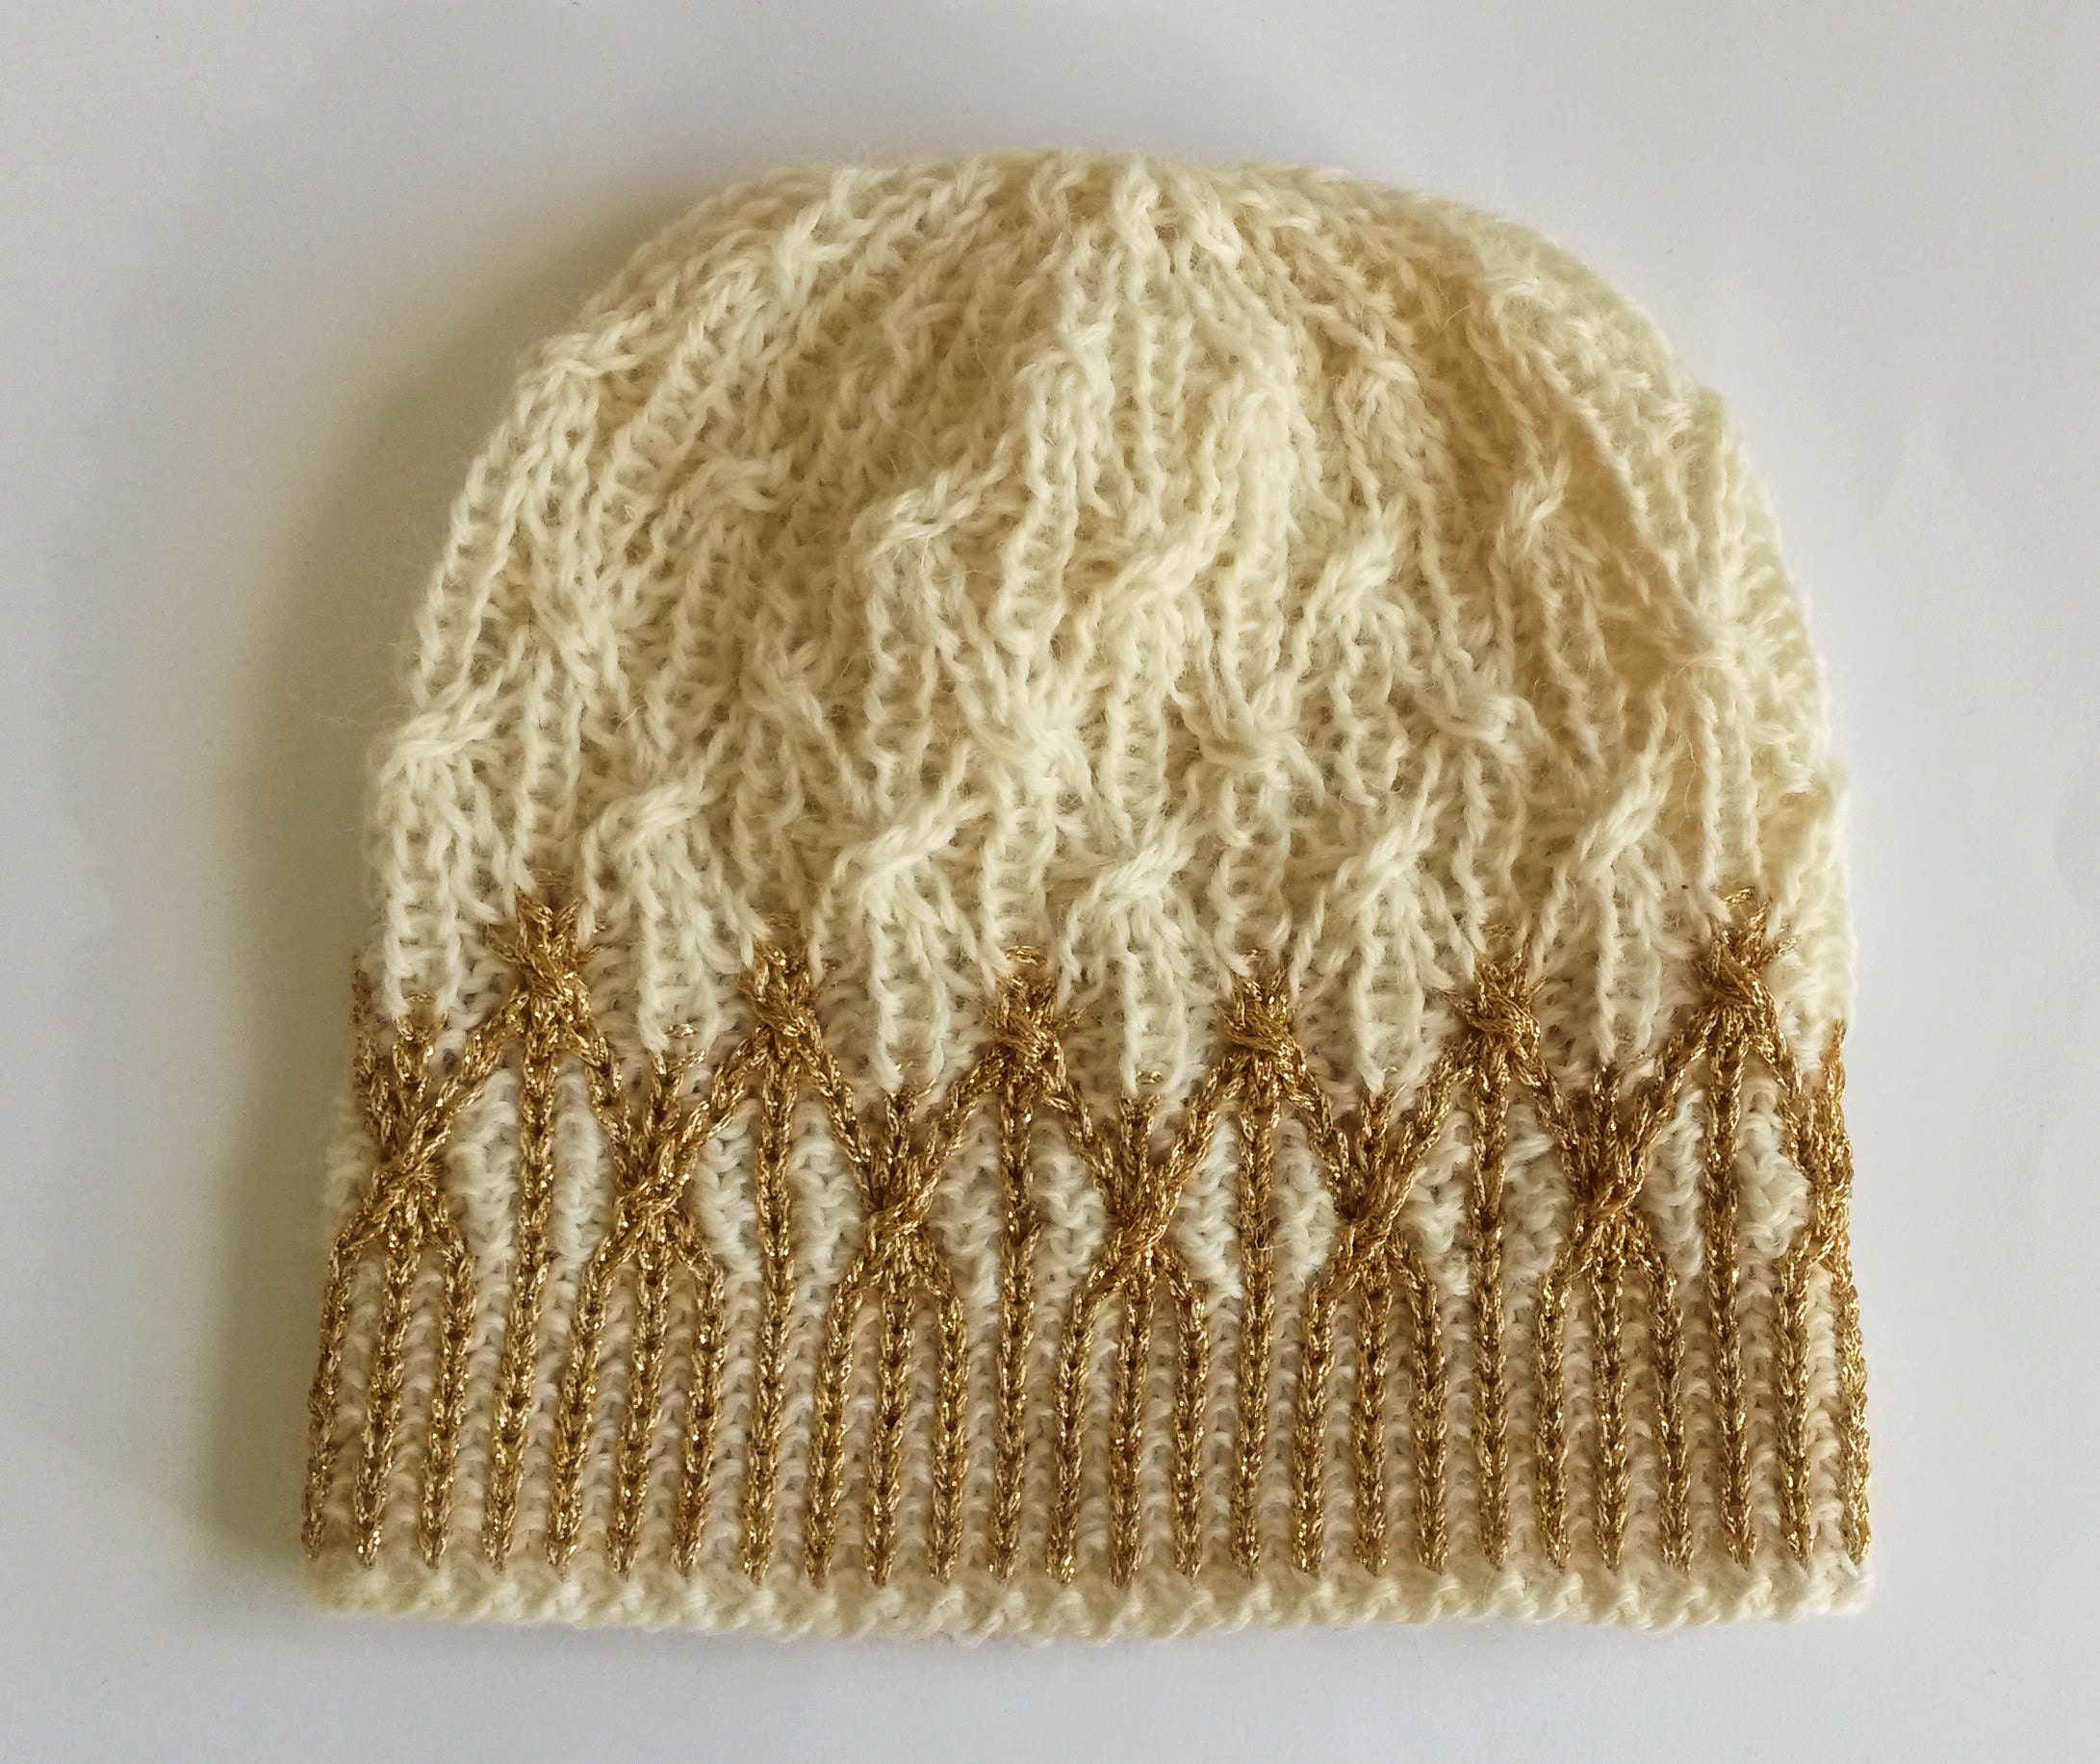 Aran Lattice Beanie in white gold